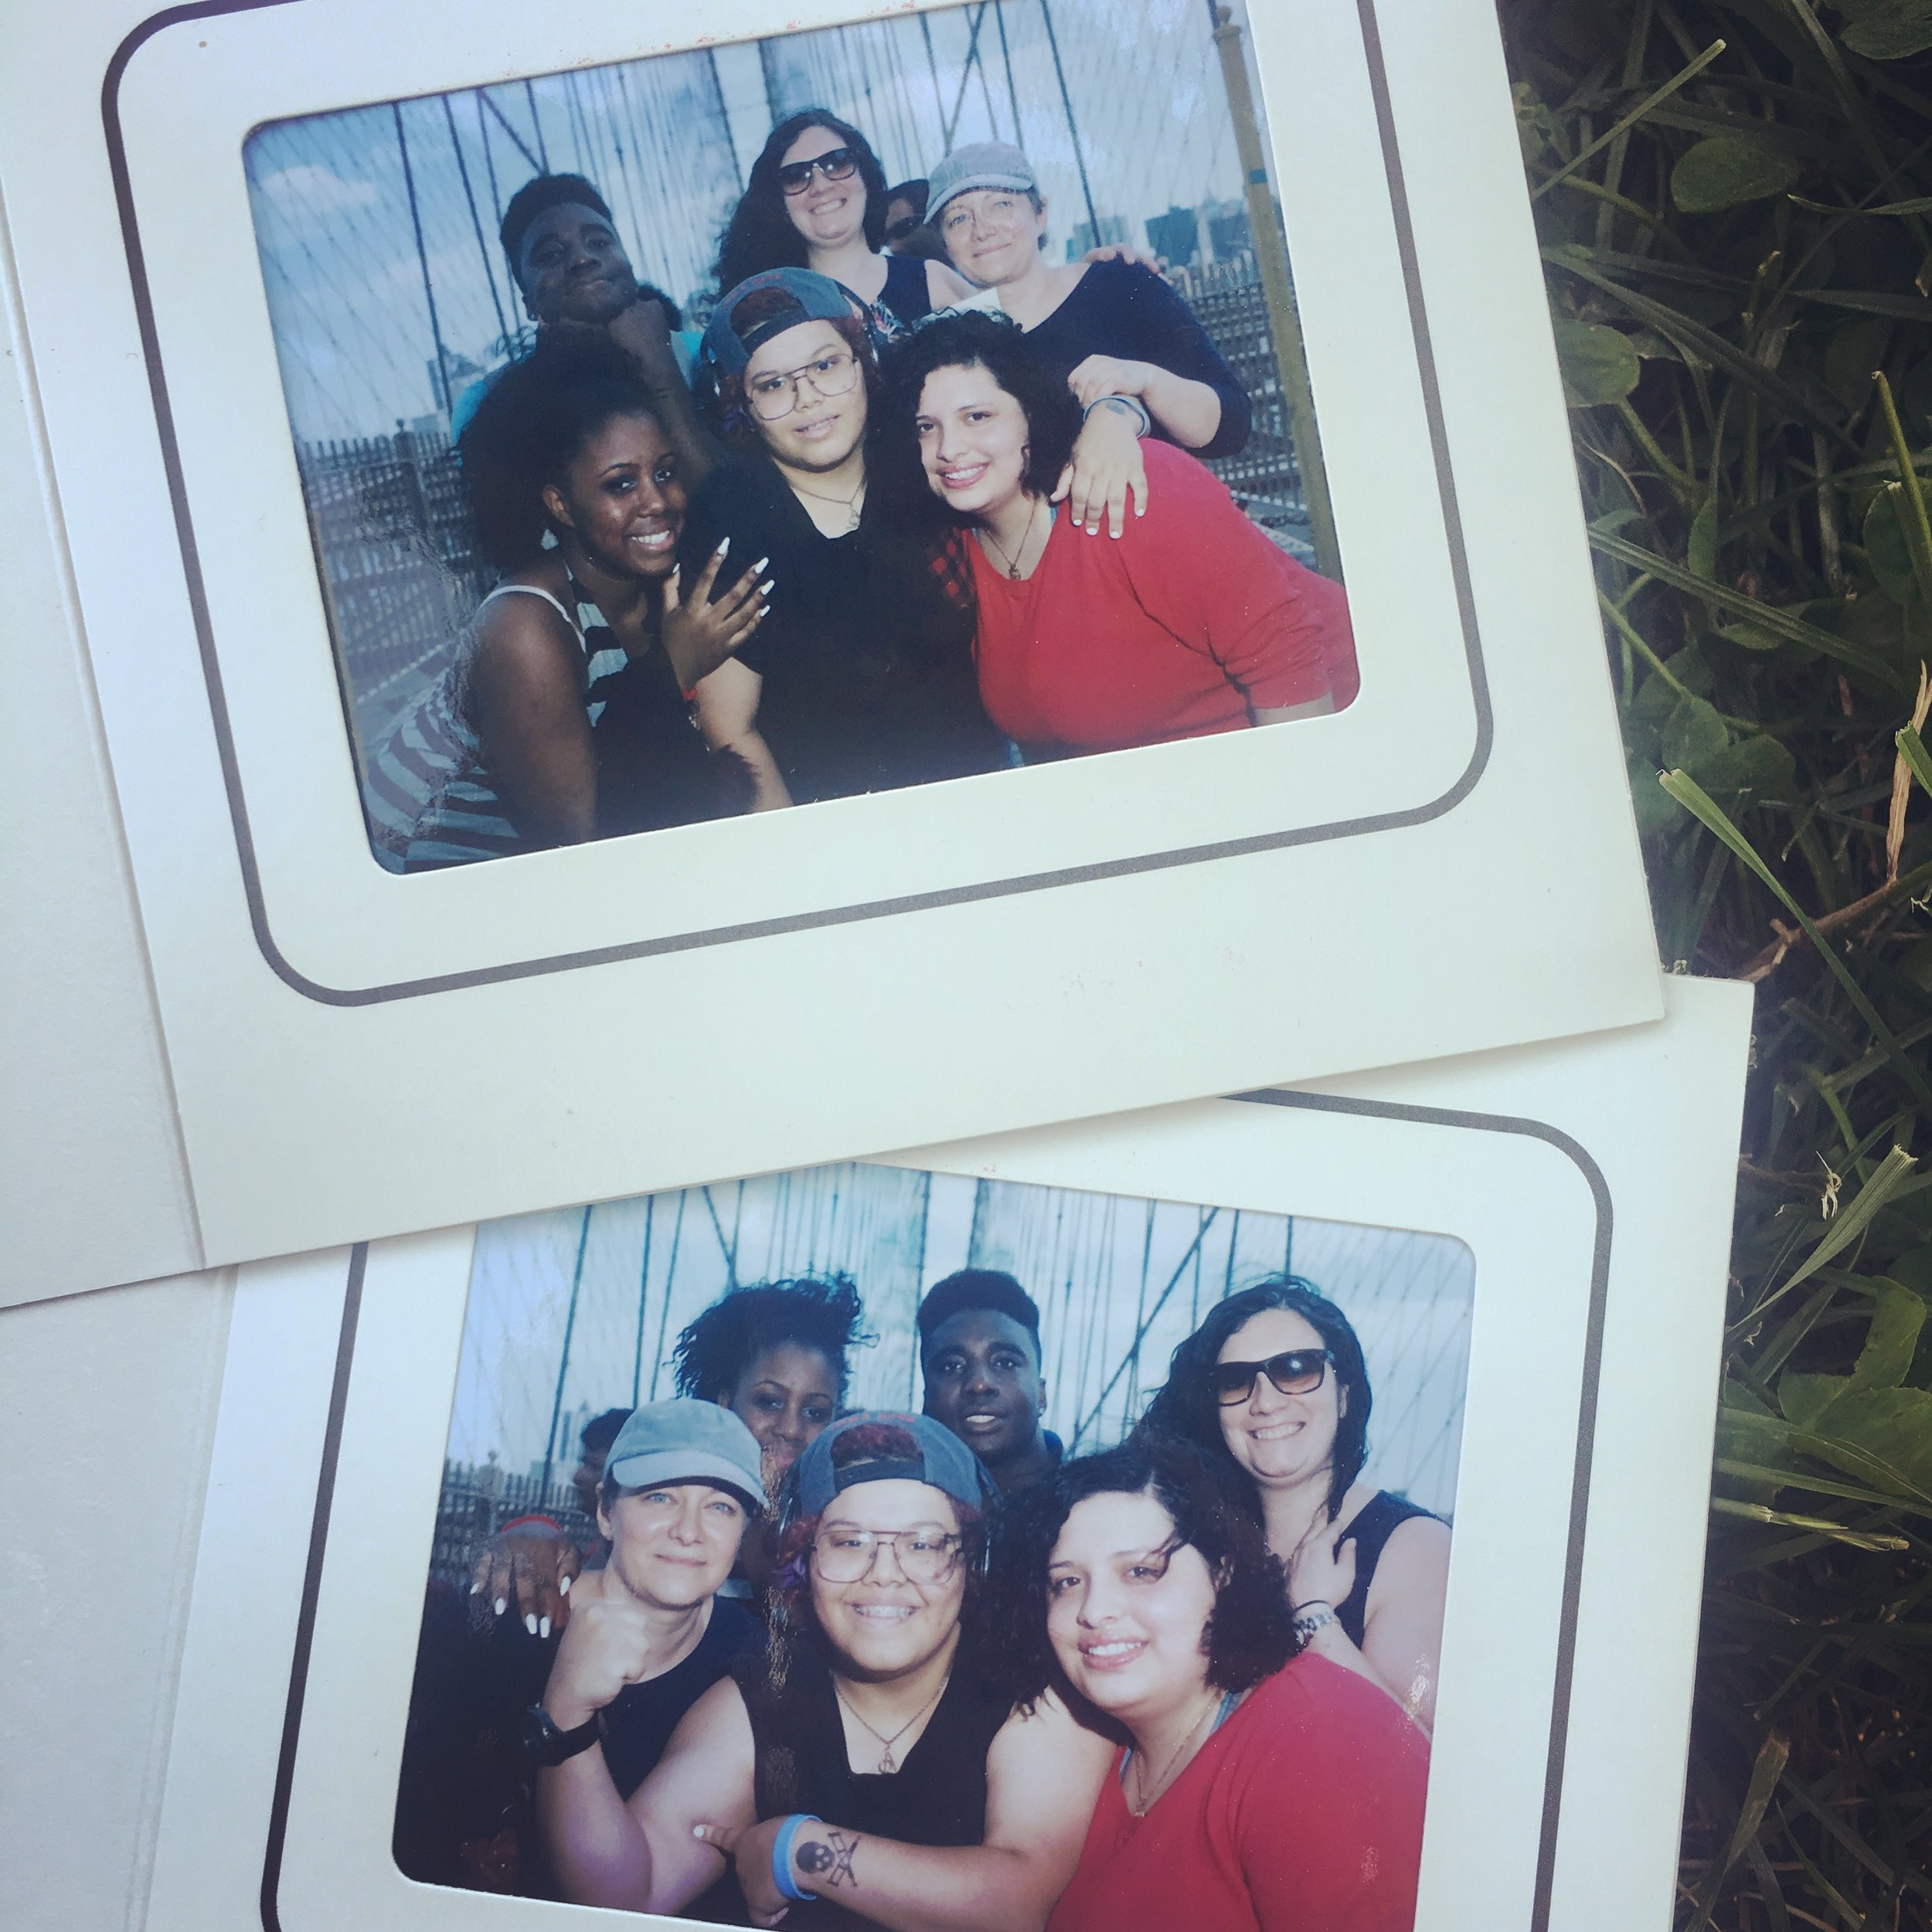 Polaroids from our most recent Saturday adventure!